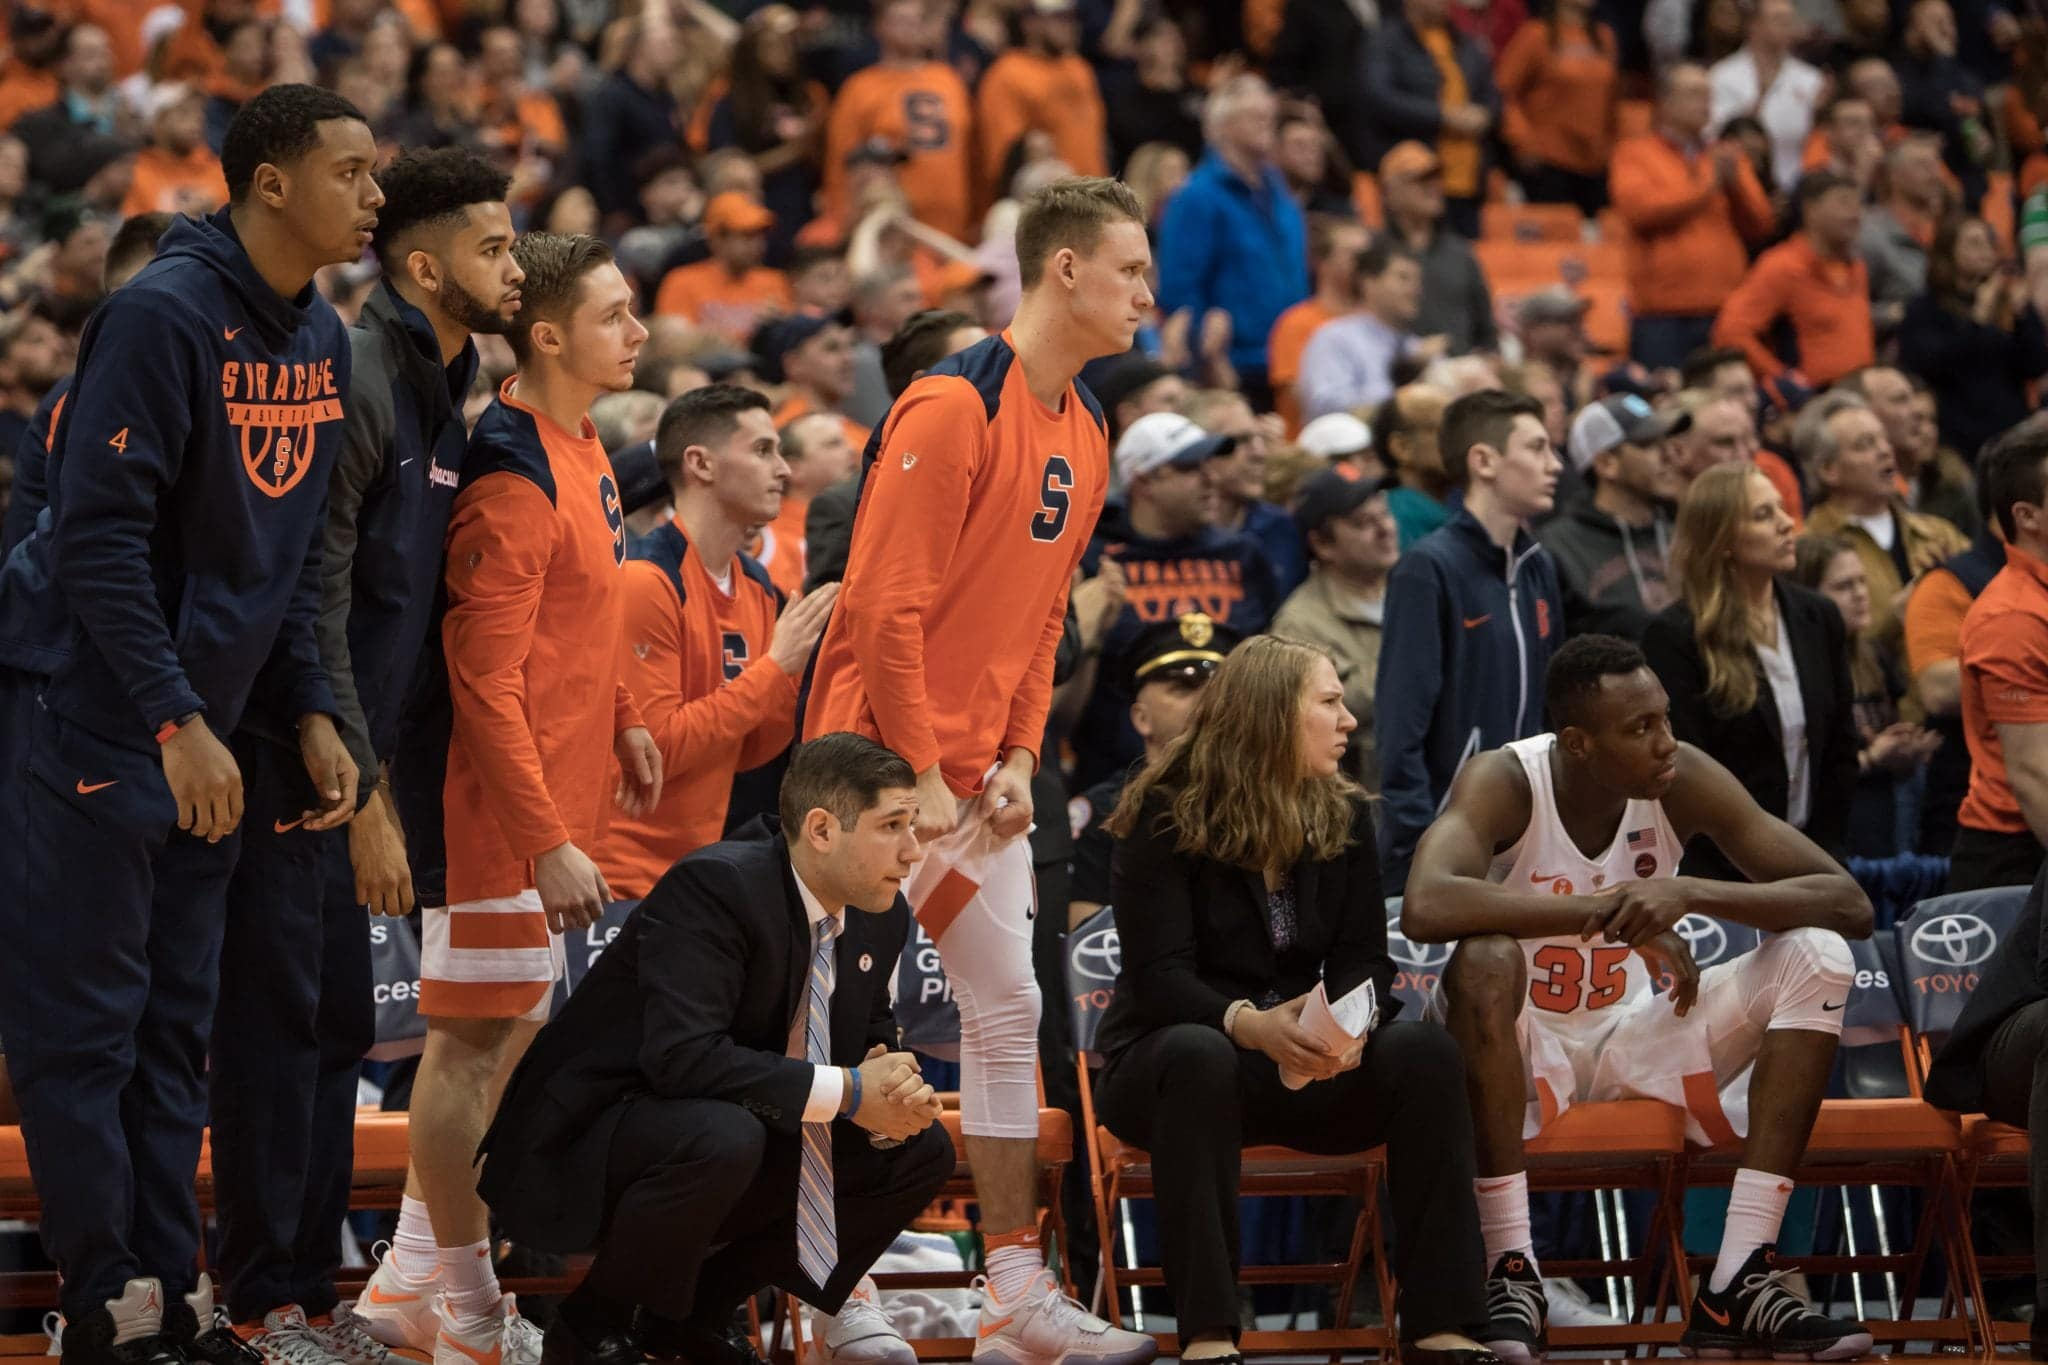 Syracuse mens basketball v. NC State{iptc:title}